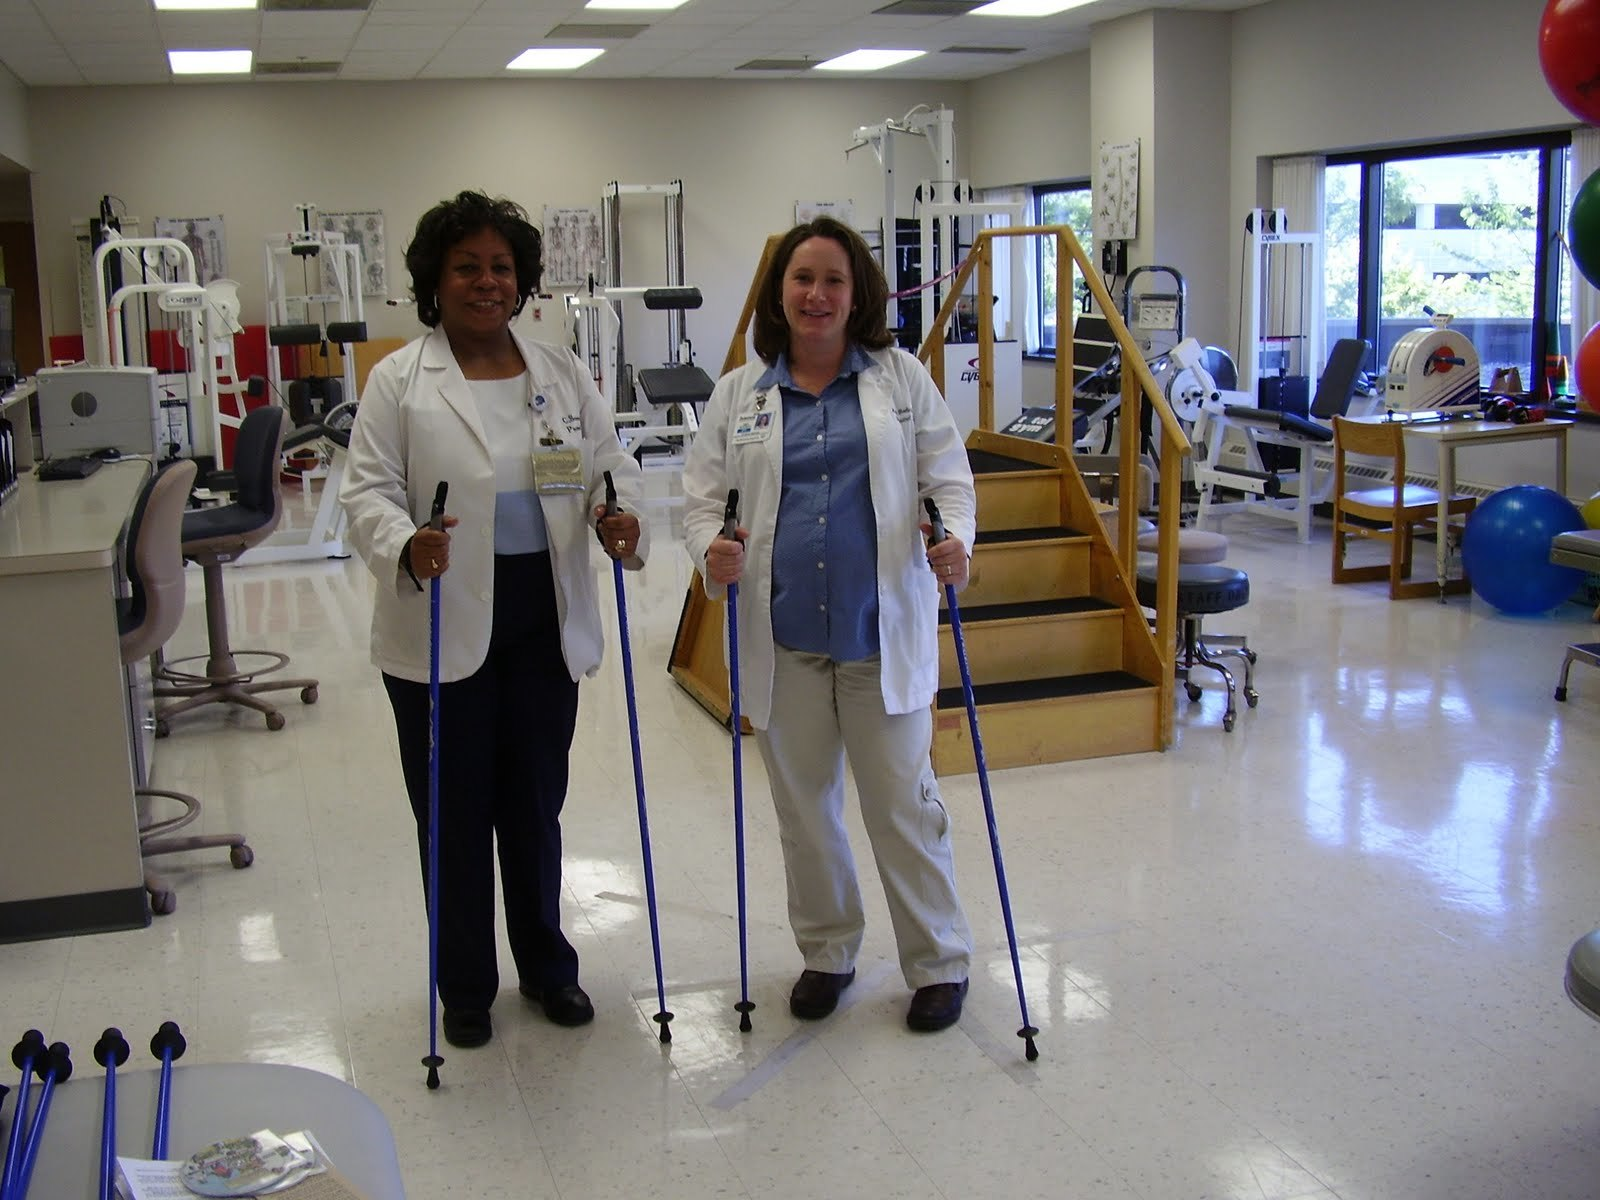 One-piece SWIX and EXEL poles can be trusted for Physical Therapy. Doctor recommended.